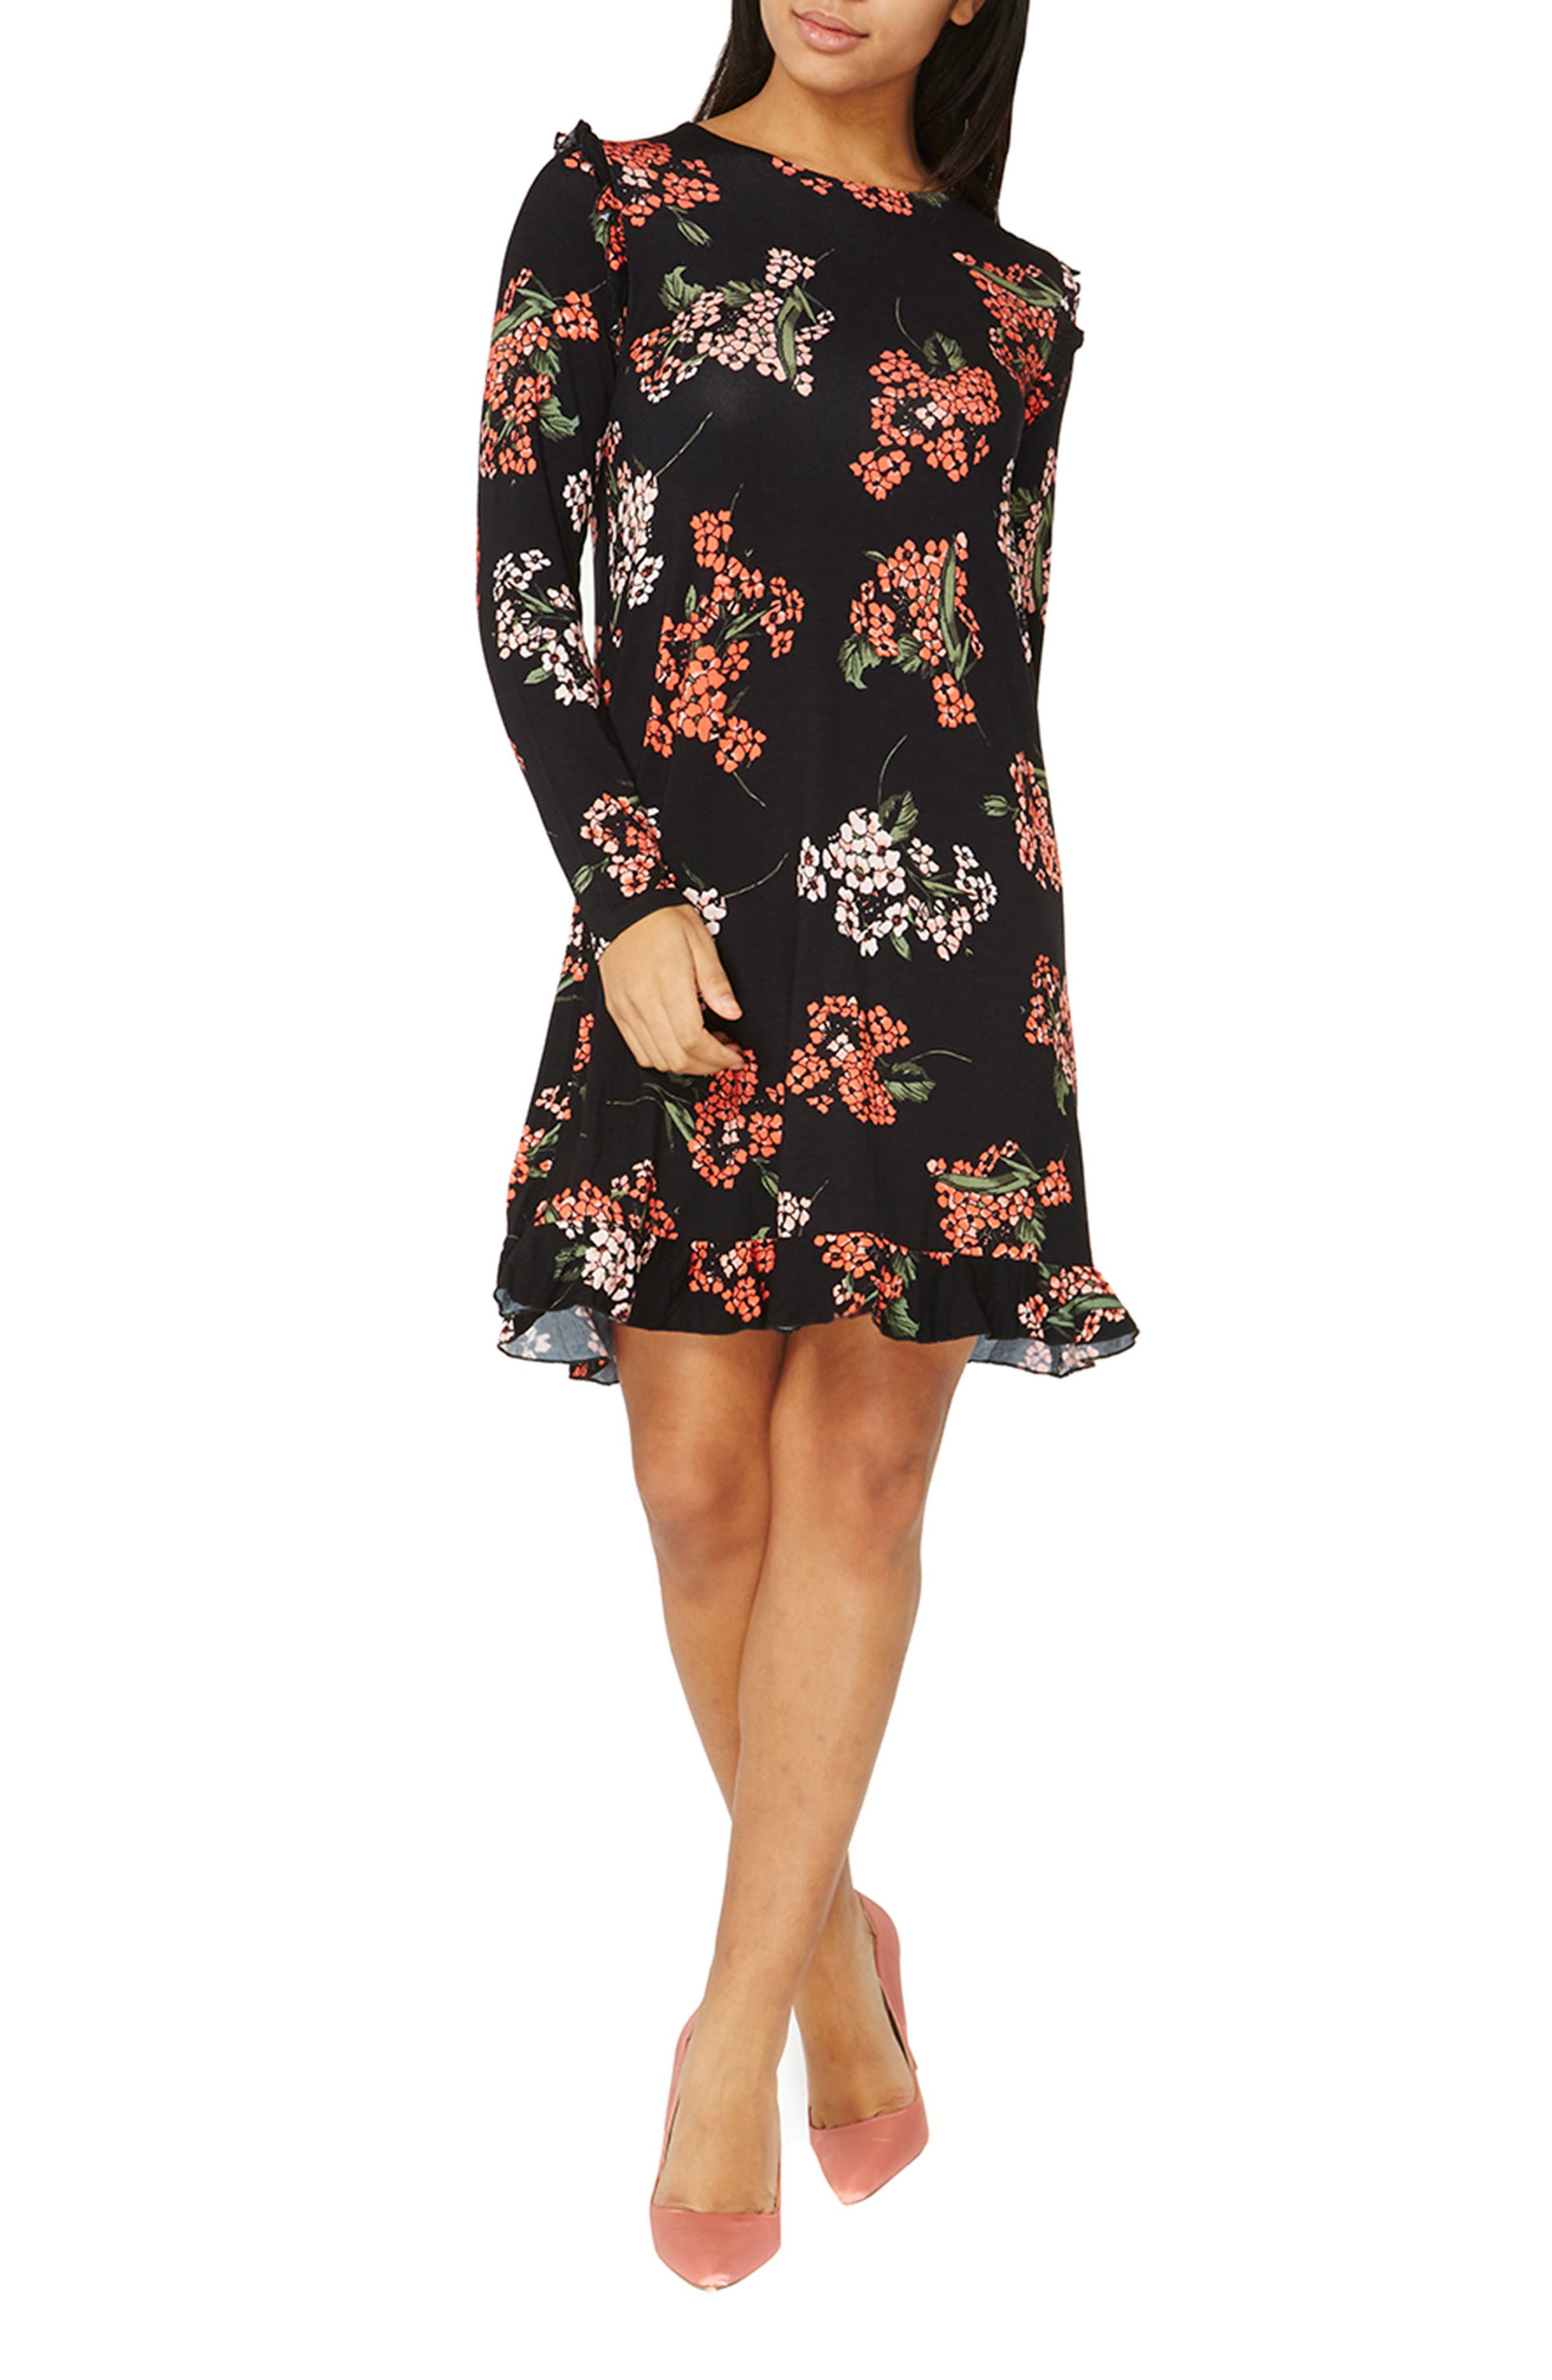 Floral Swing Dress,                             Main thumbnail 1, color,                             001